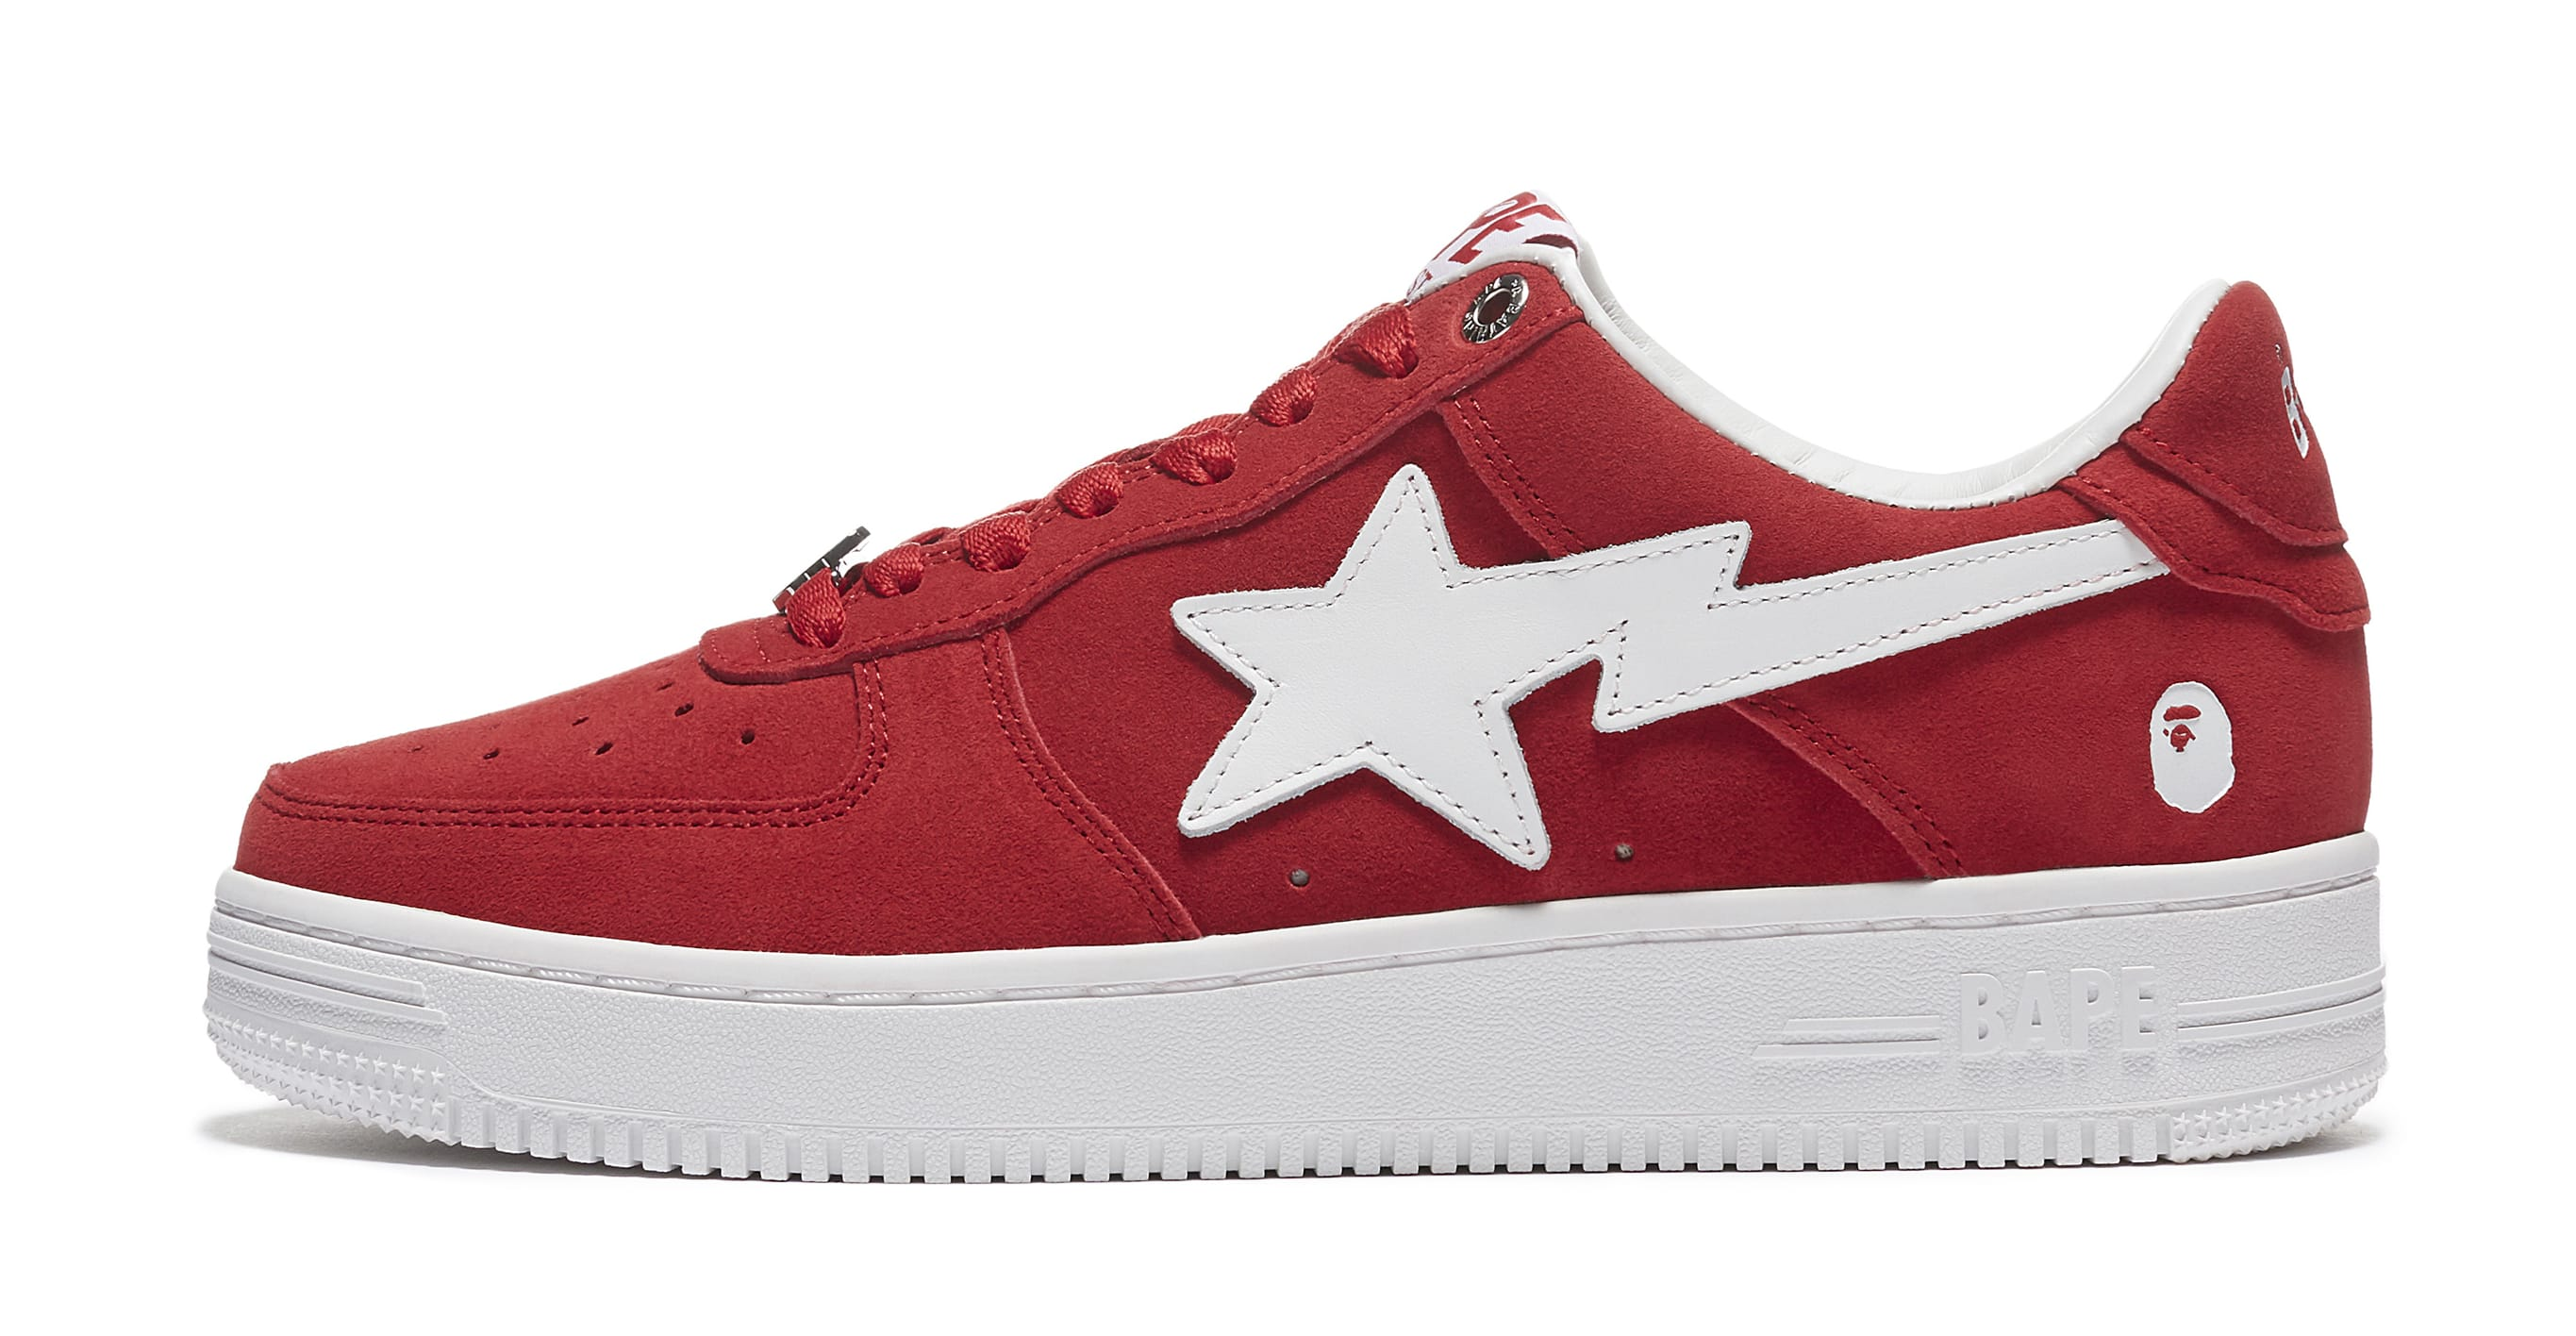 Bape Sta Suede 'Red' Lateral